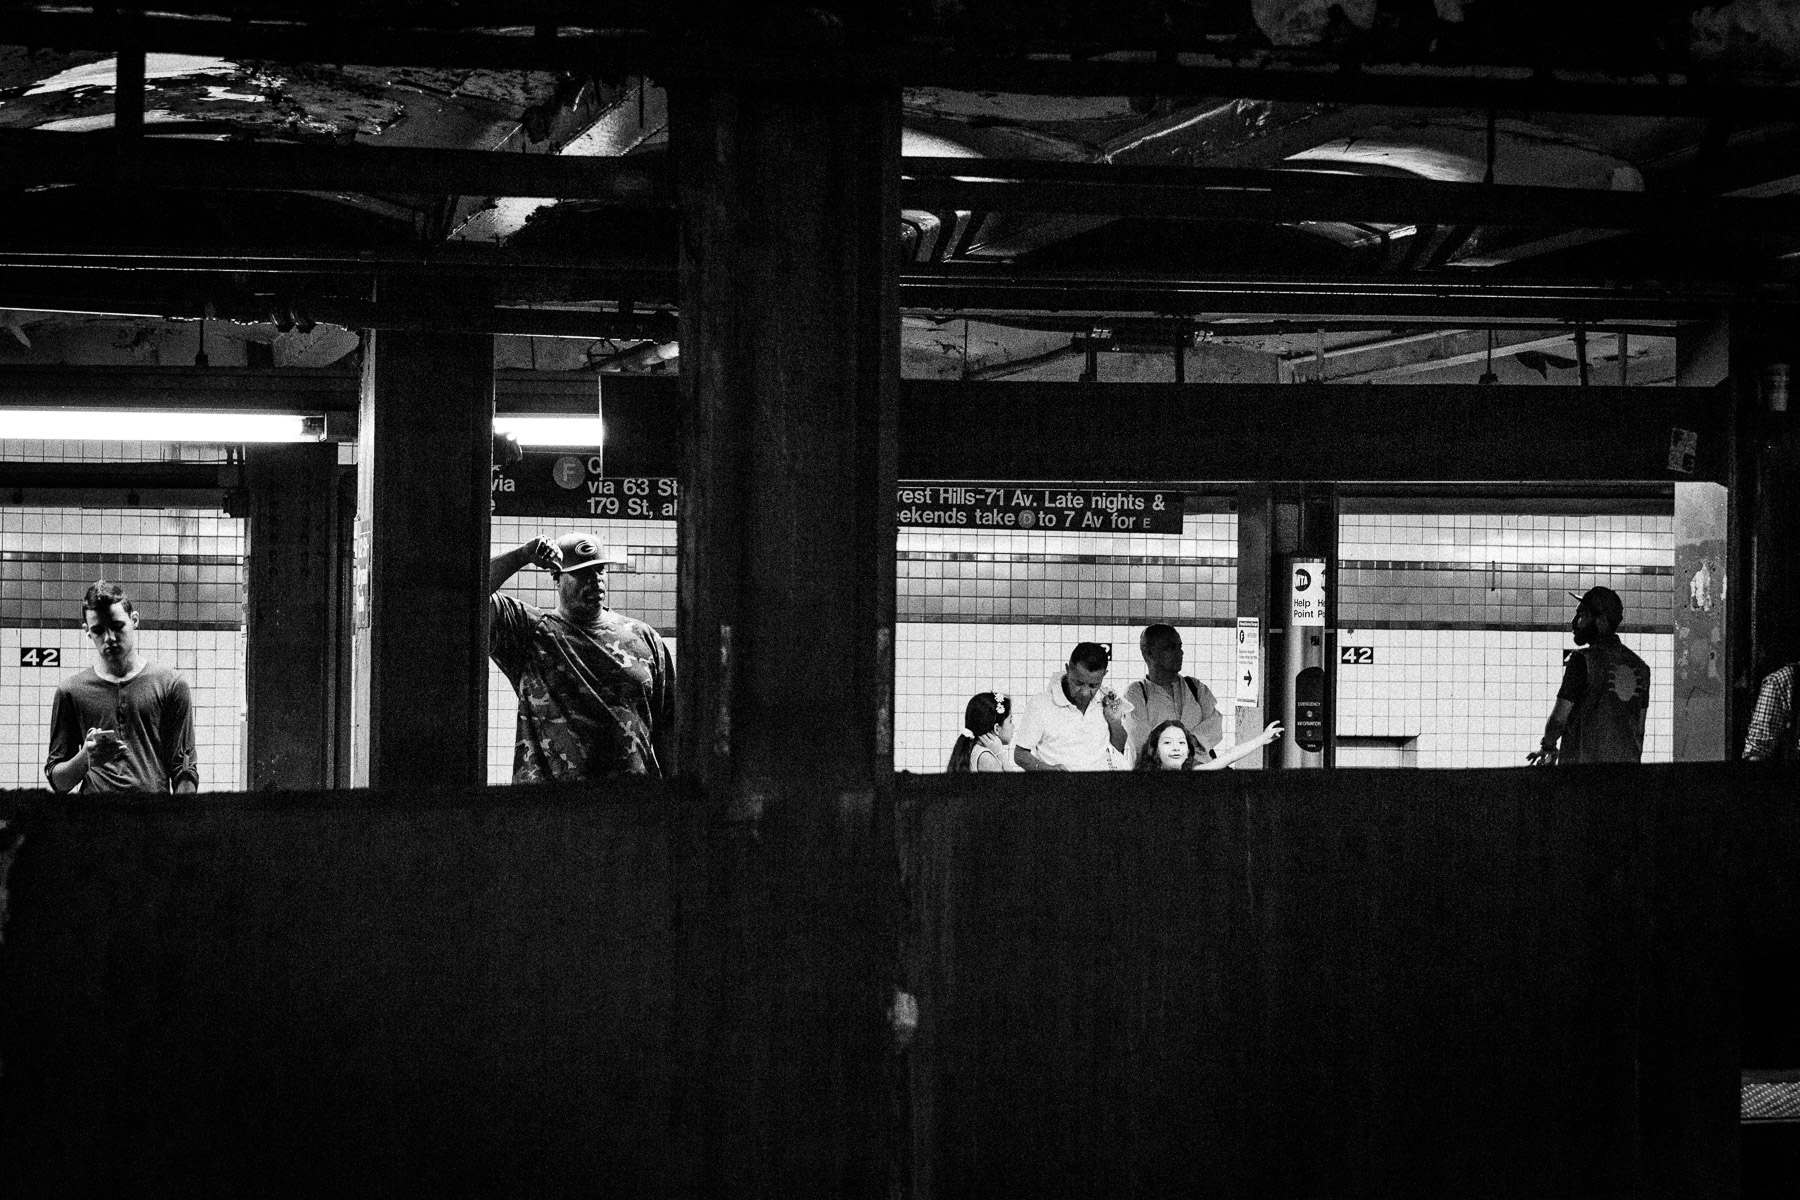 photos-inside-subway-nyc-black-and-white.jpg